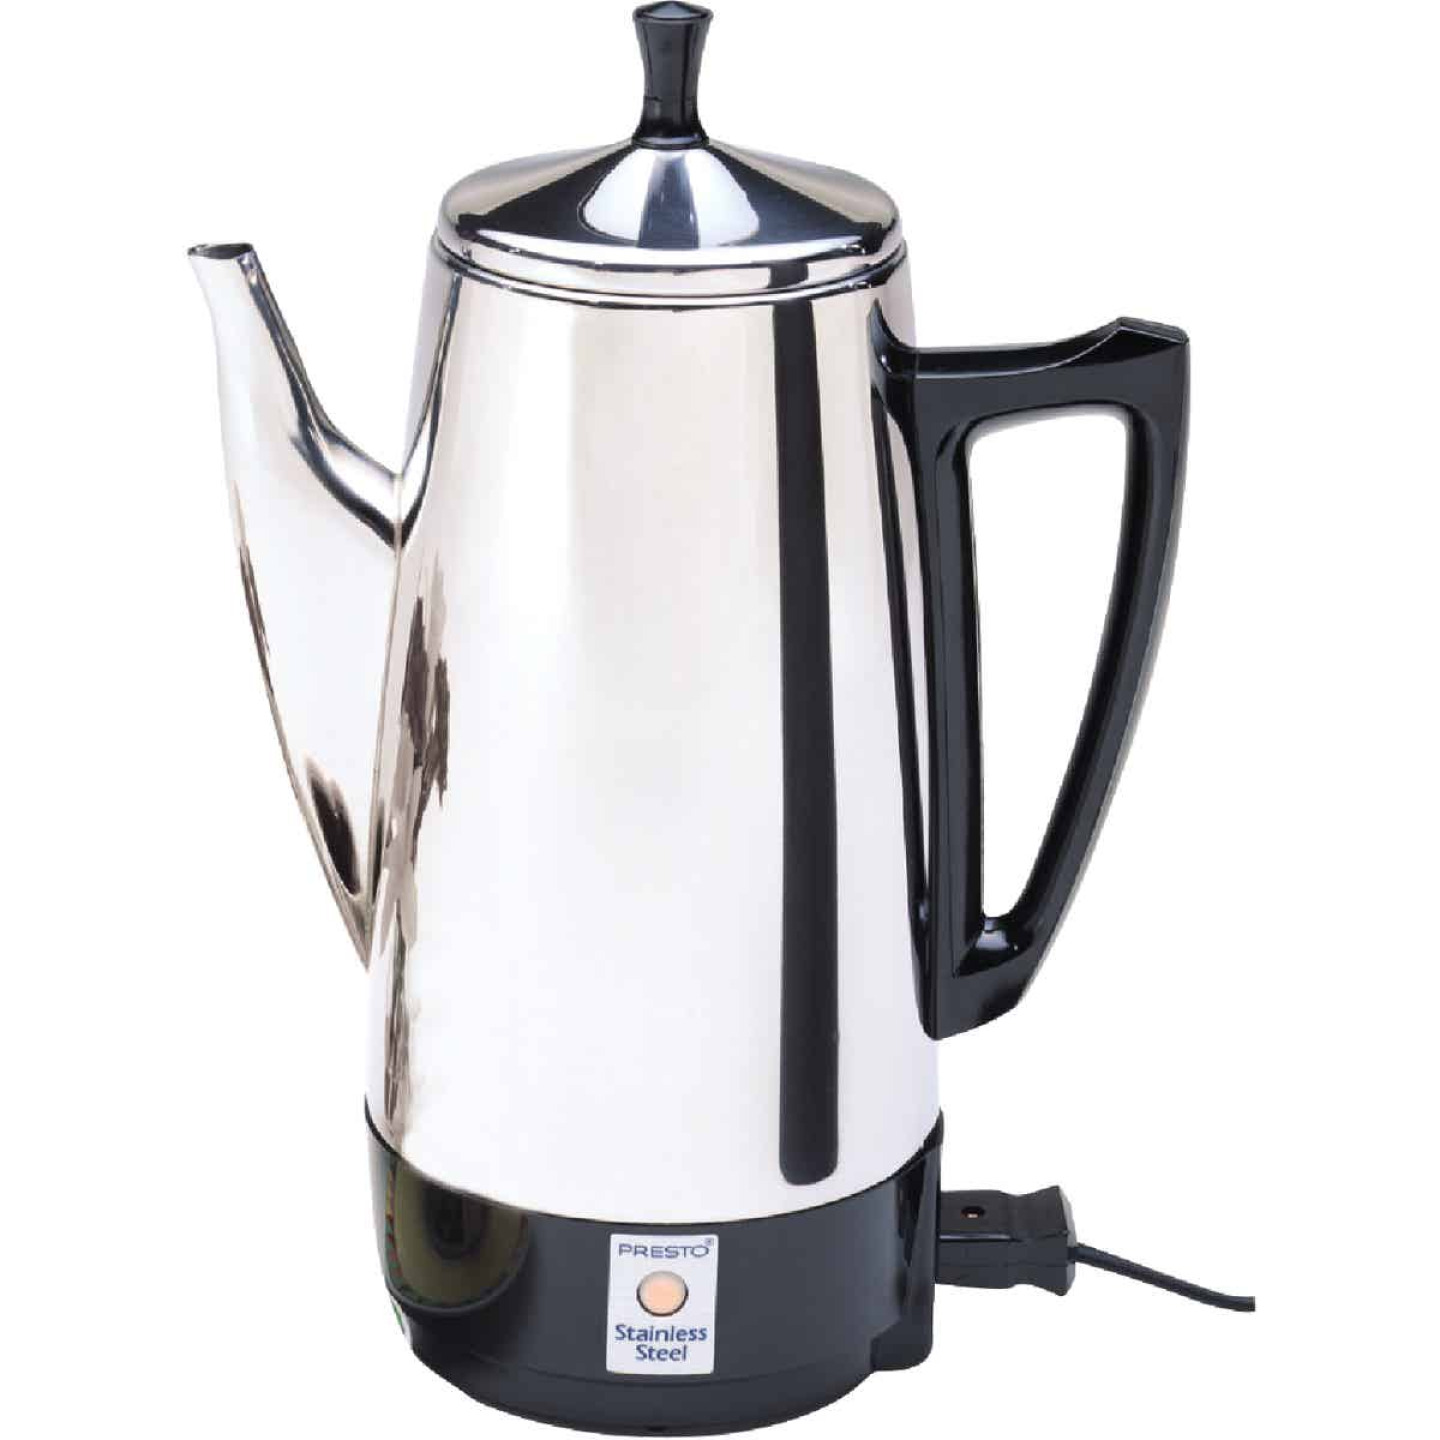 Presto 2 To 12 Cup Stainless Steel Electric Coffee Percolator Image 1